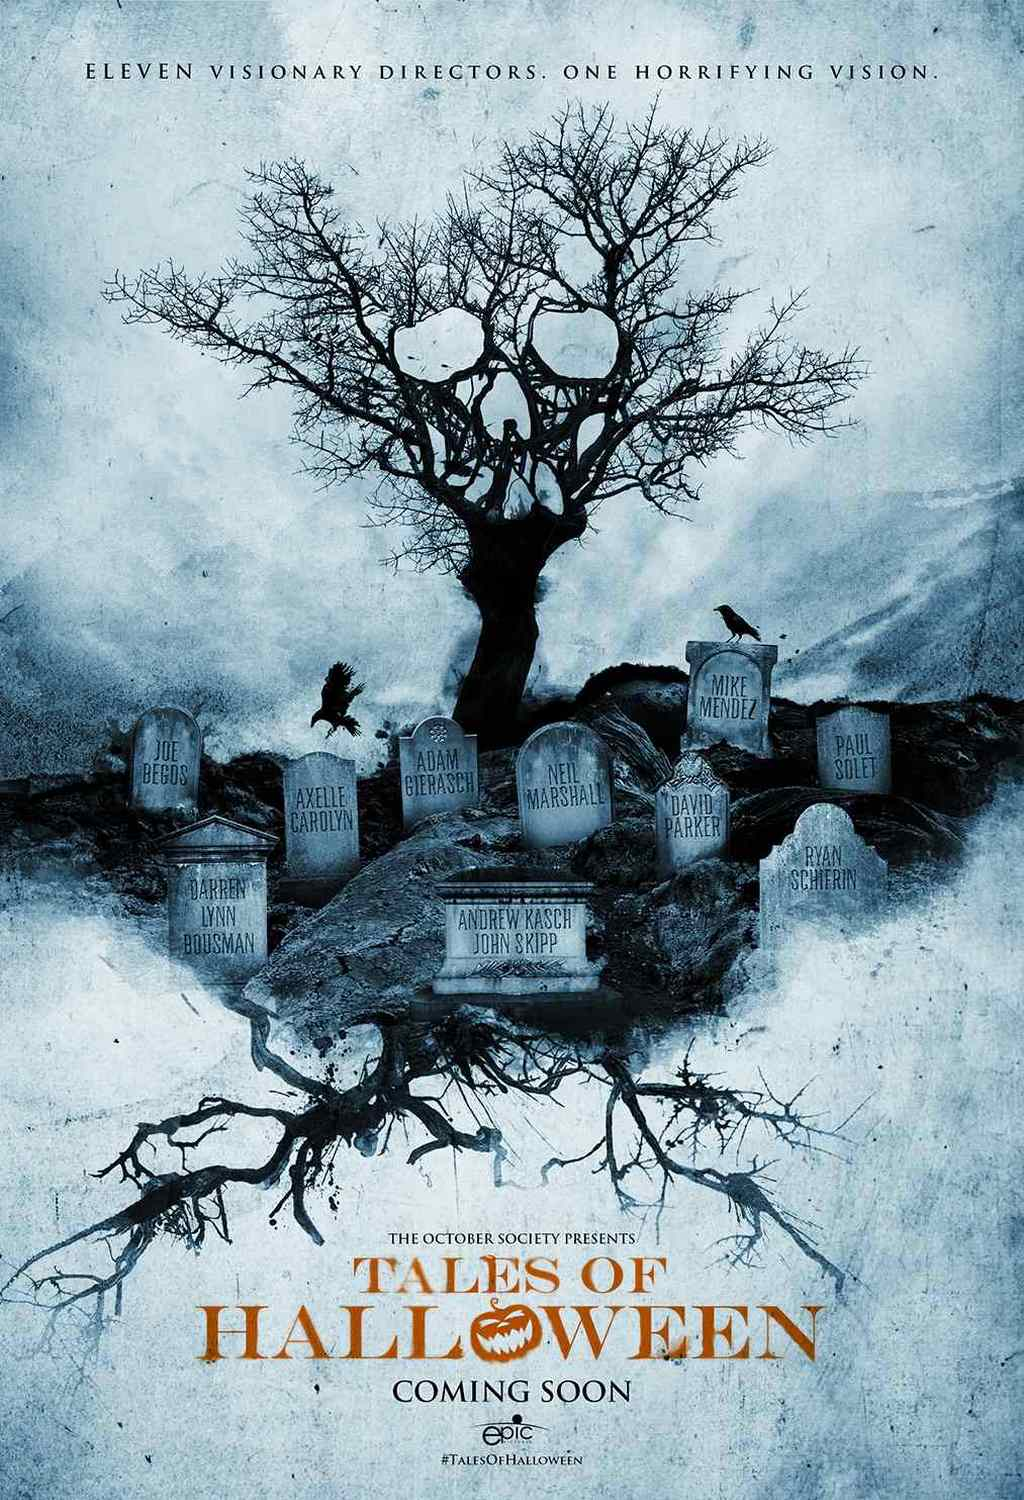 Tales of Halloween (2015) - Dread Central